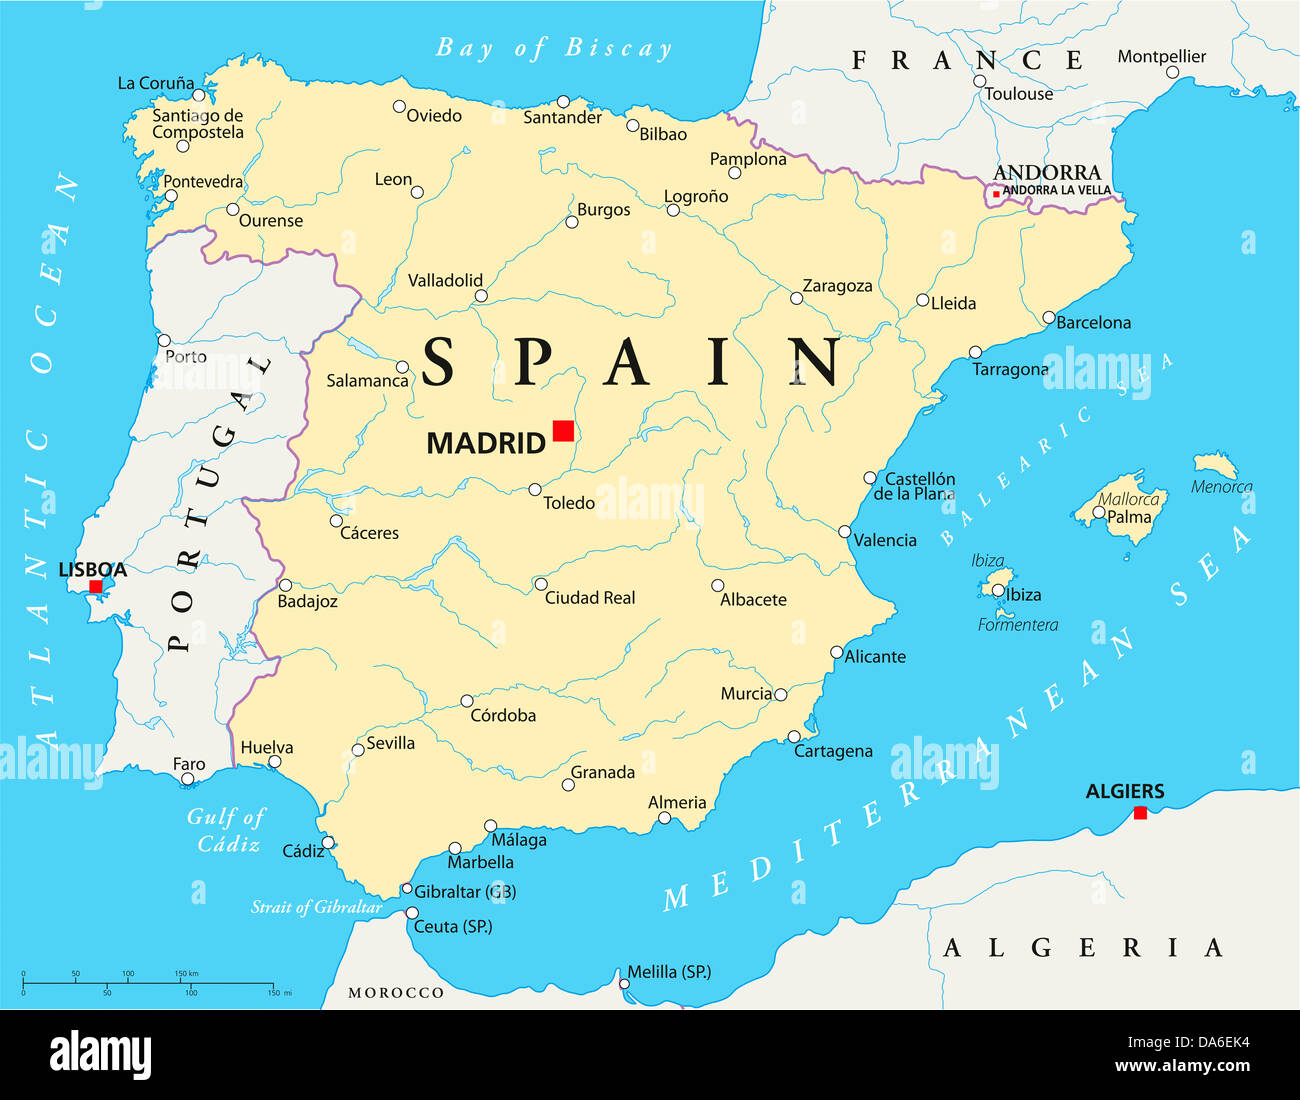 spain political map  stock image. mediterranean map spain stock photos  mediterranean map spain